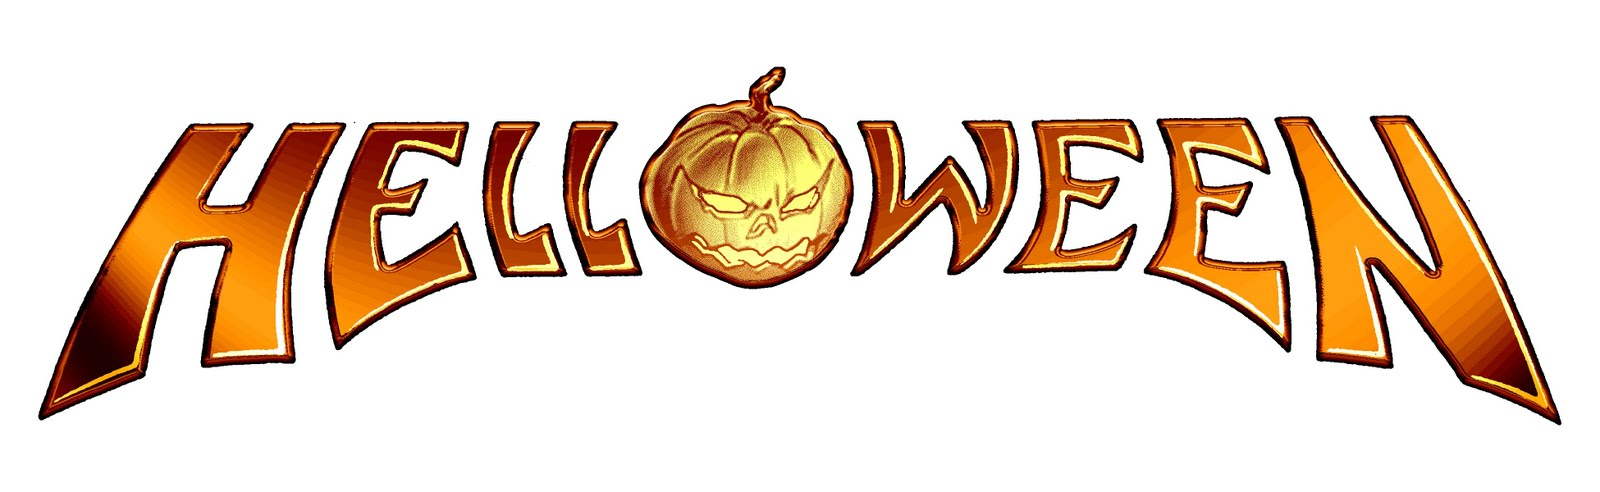 lyrics helloween king 1000 years